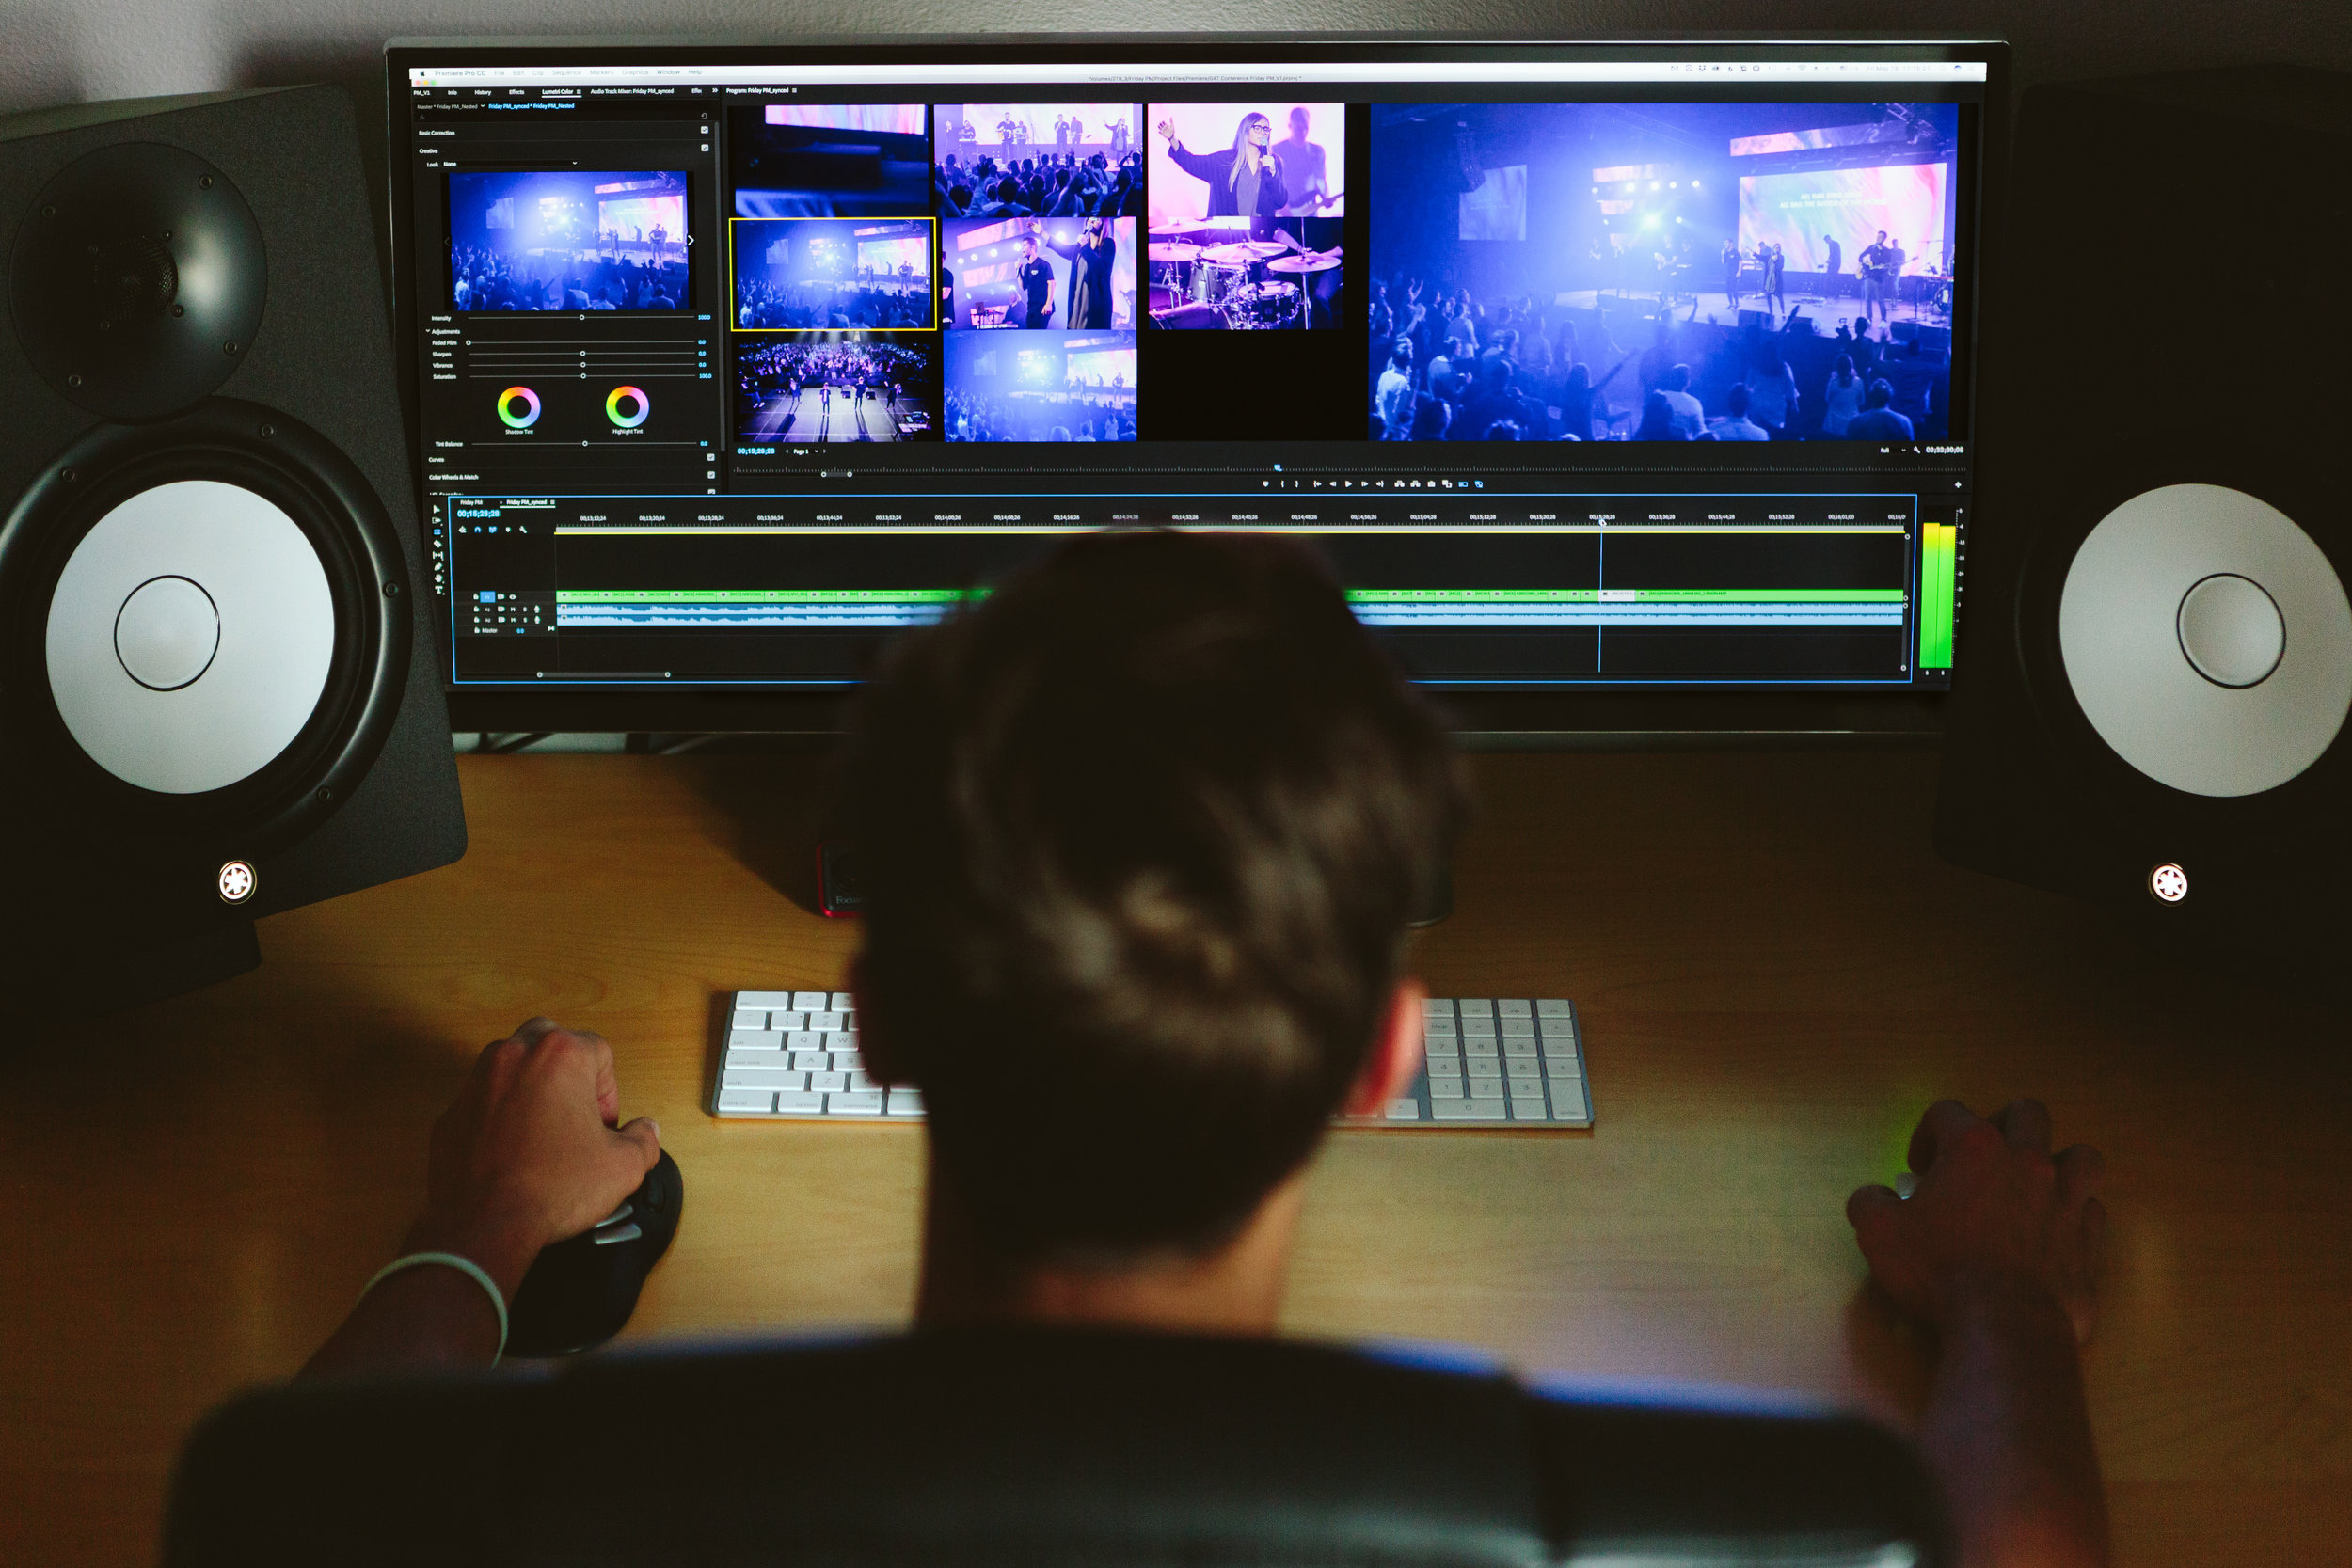 POST-PRODUCTION - Obsession is key when it comes to editing, and we're obsessed with getting every second to be impactful, engaging, seamless and goal driven. This really gets us jumping out of our editing seats with excitement.